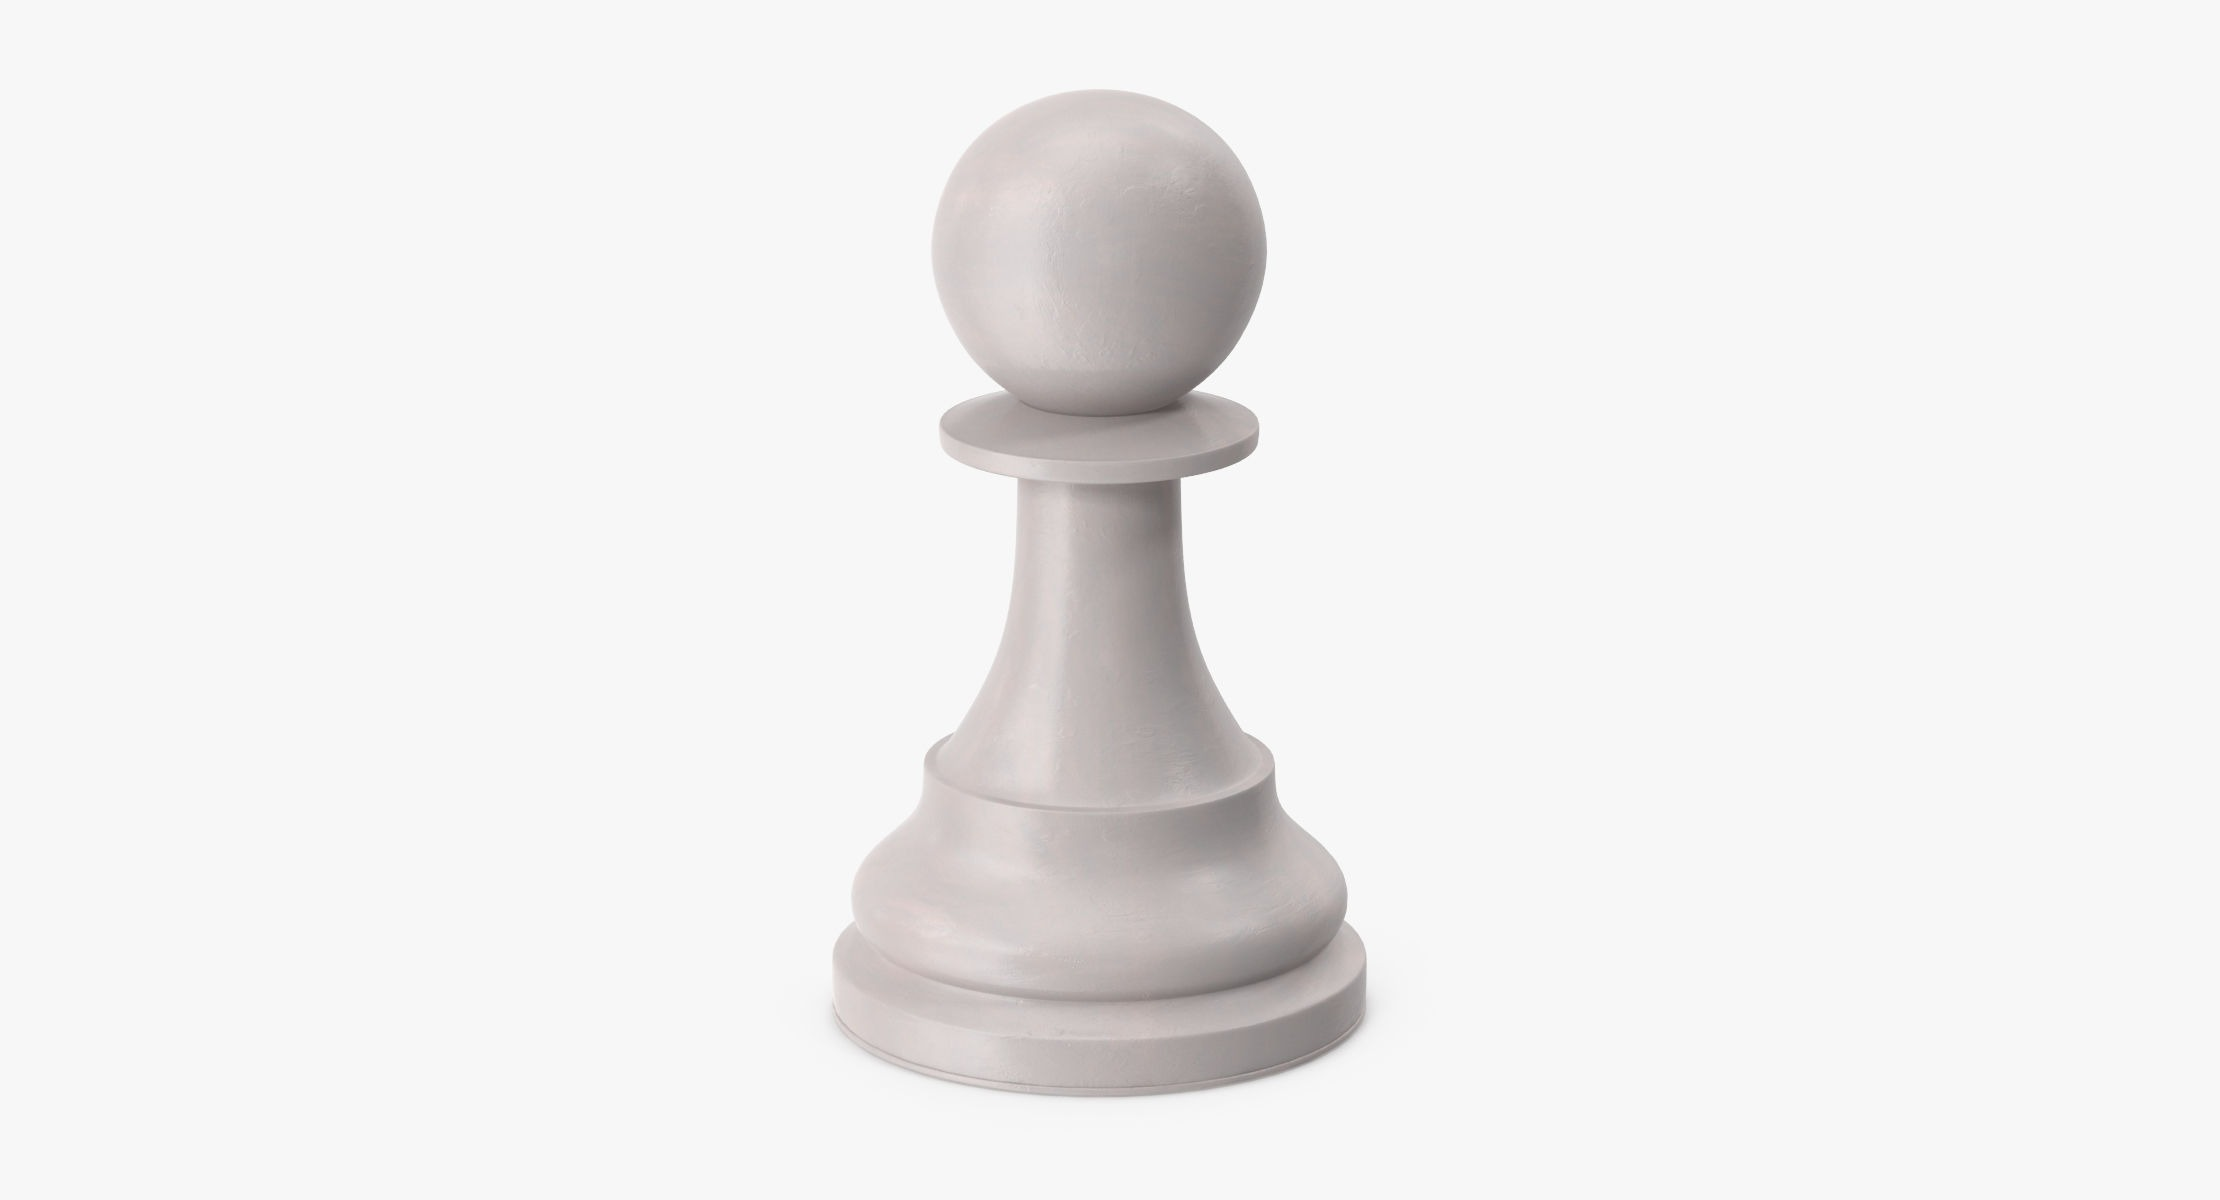 Chess Pieces - Pawn White - reel 1